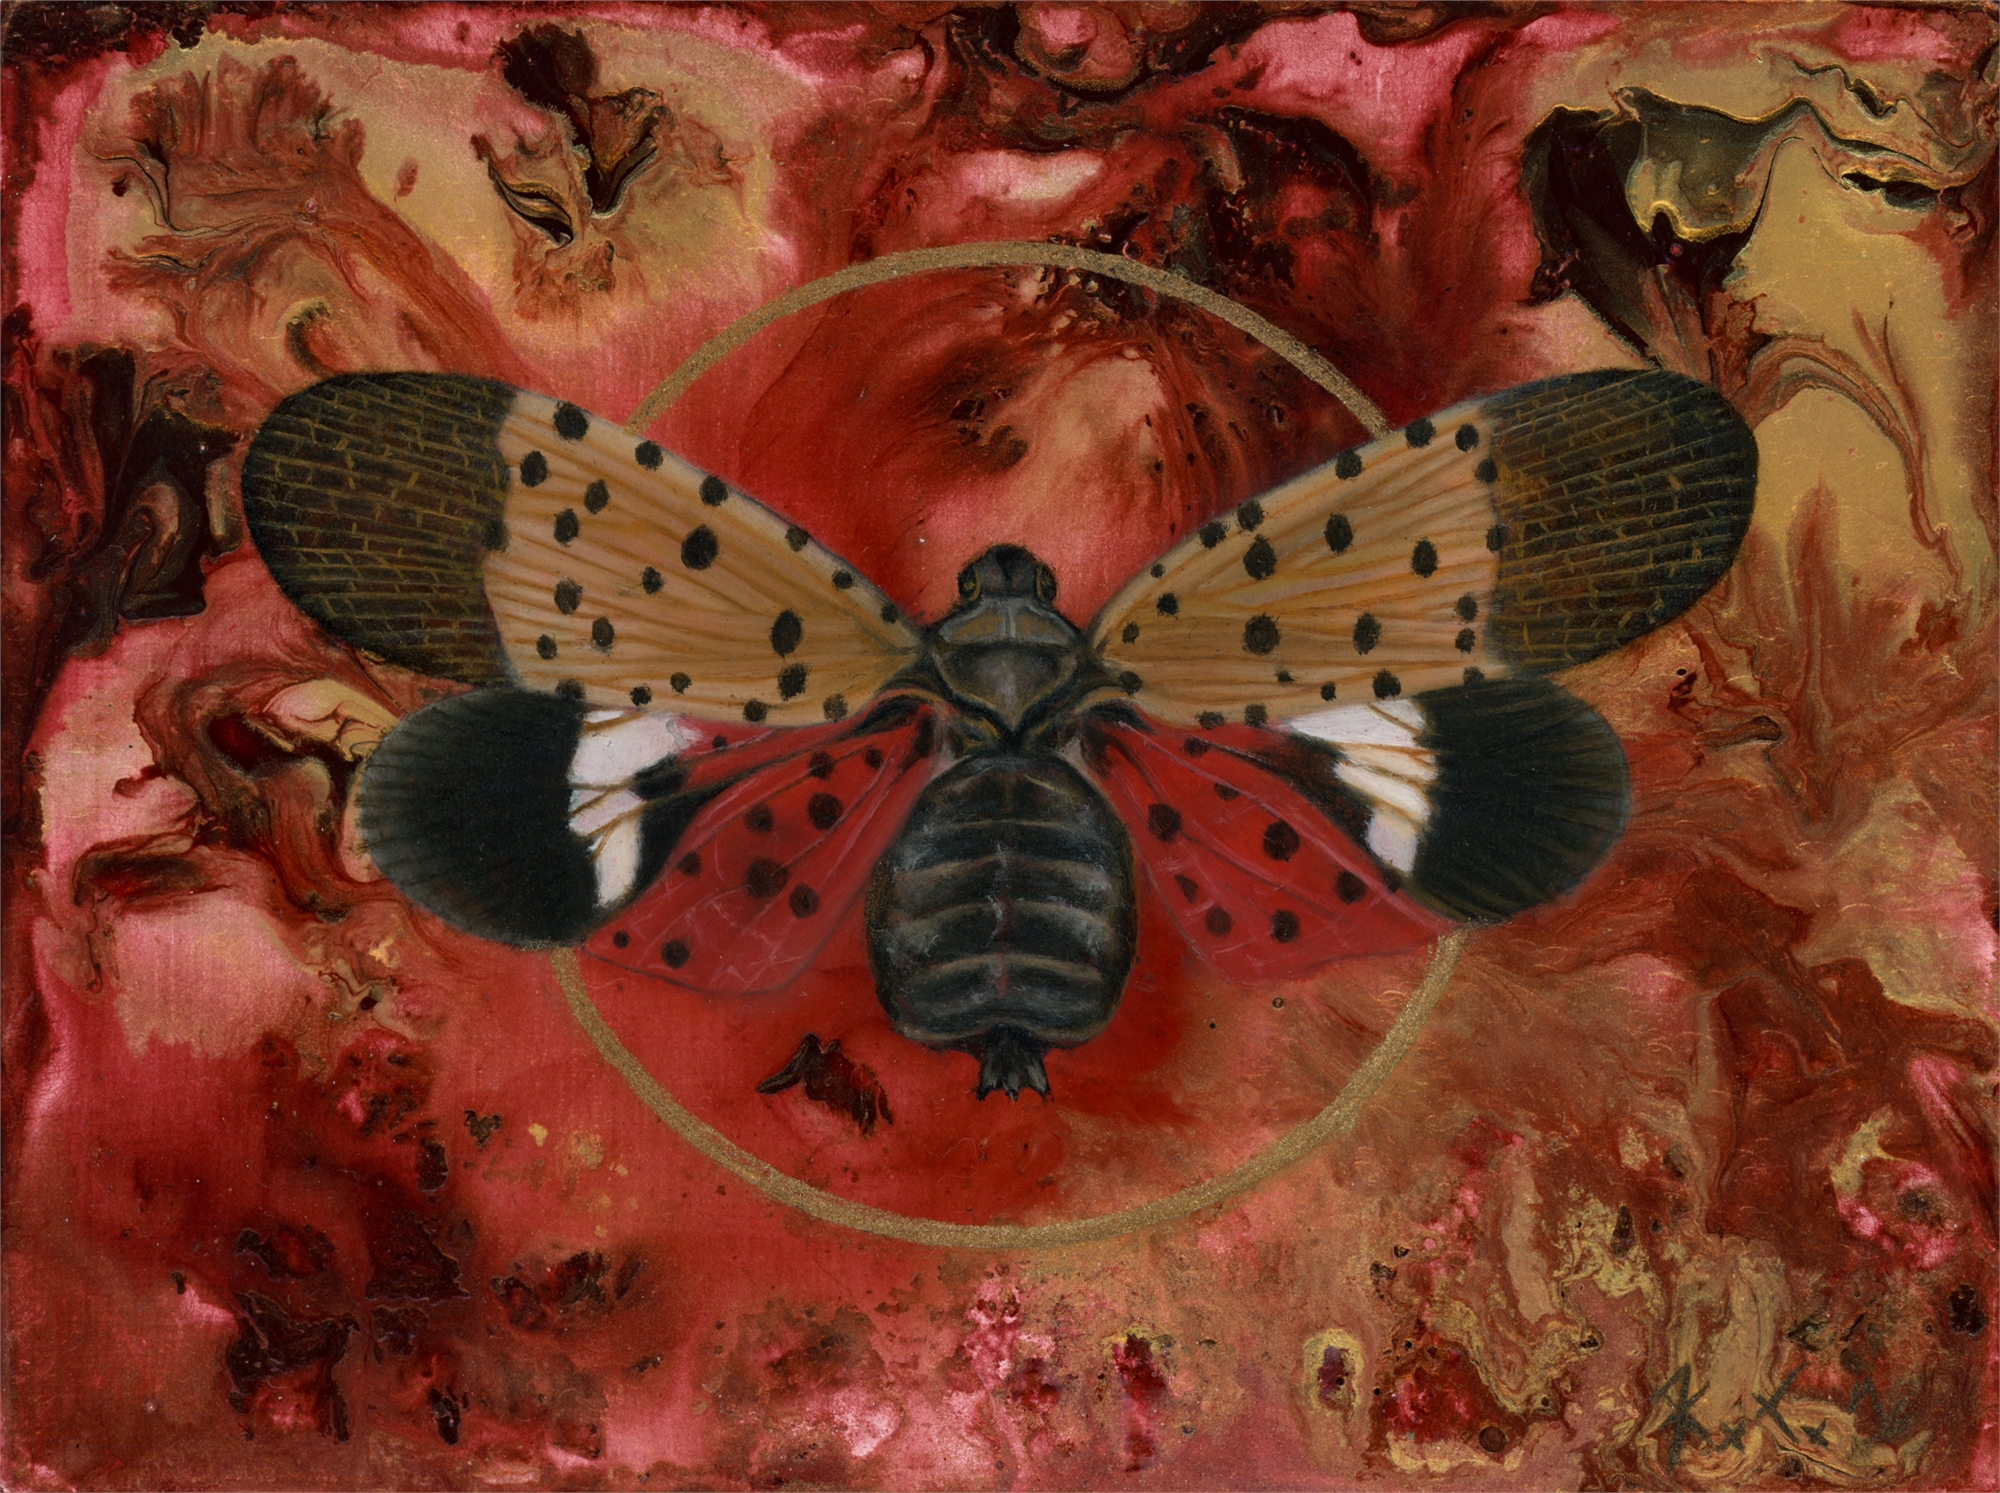 Lycorma delicatula by Kierstin Young